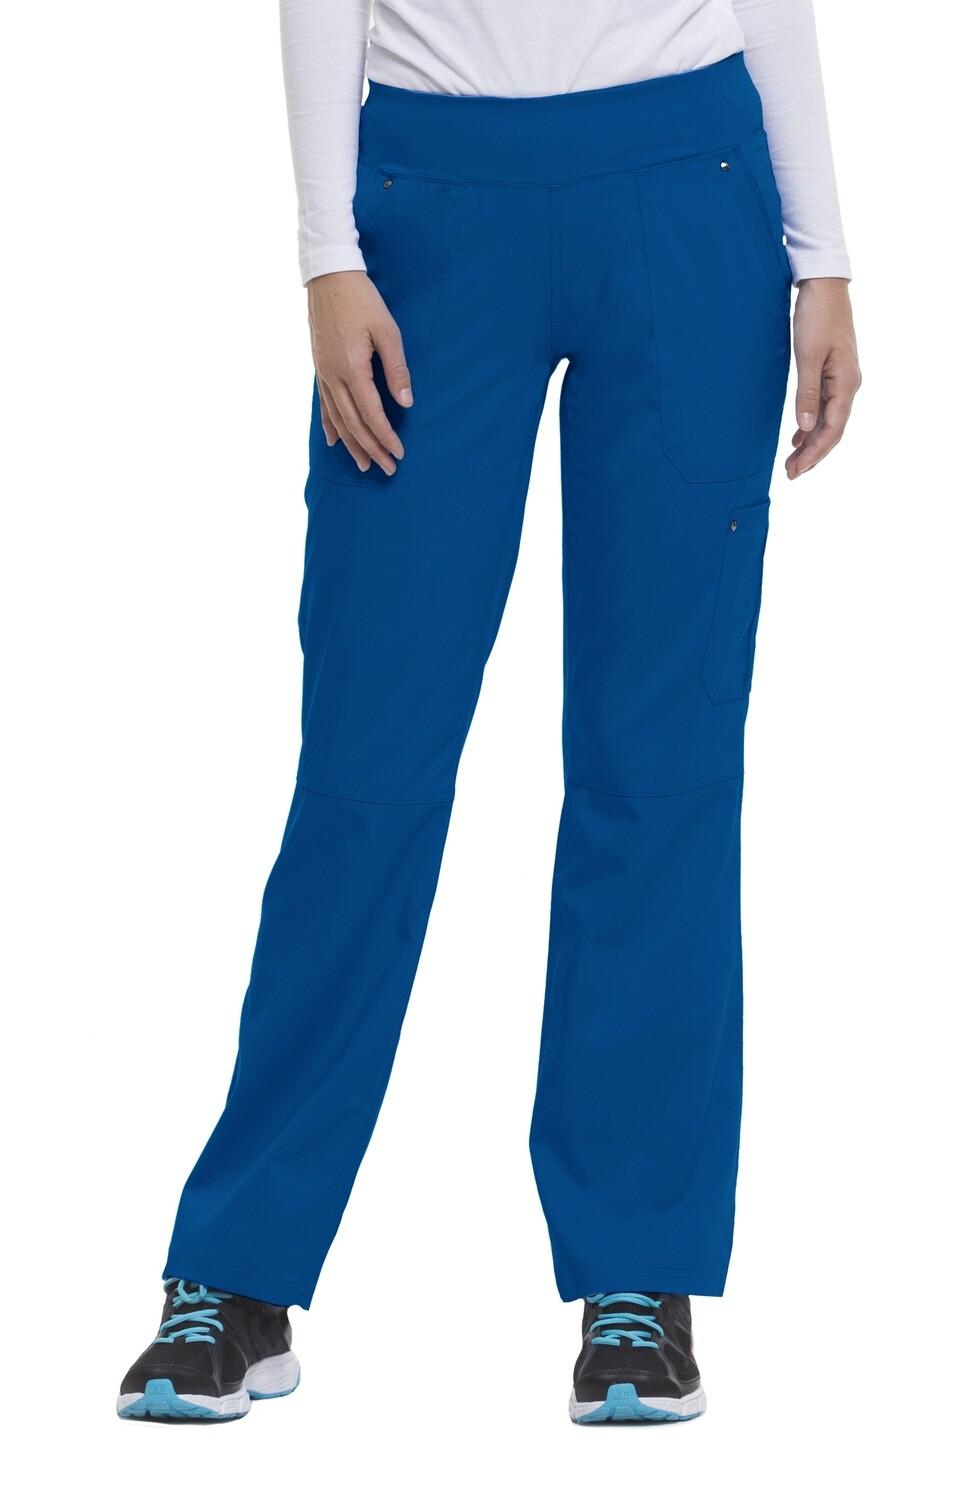 9133 ROYAL TORI PANT  - PL M ROYAL R